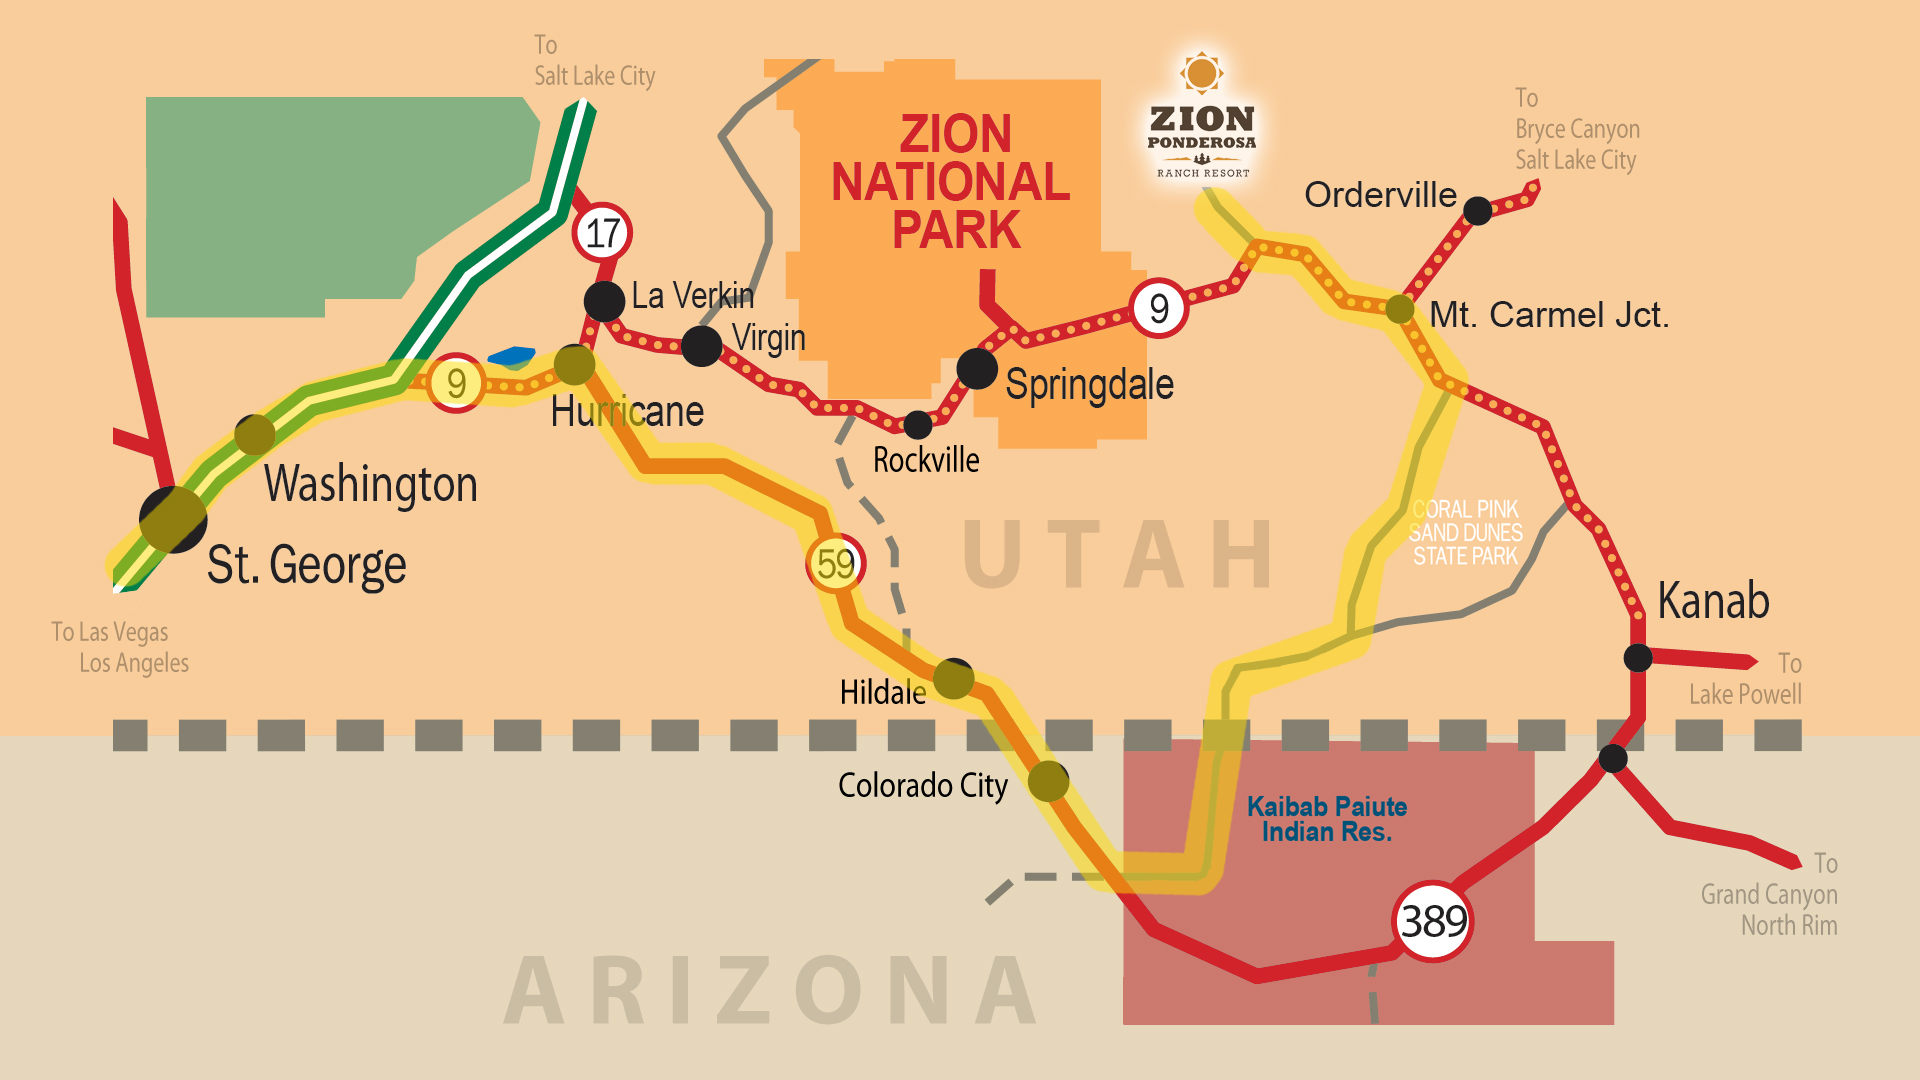 Zion Ponderosa Ranch Resort Location | Directions & Map on grand canyon map, zion cabin rentals, grand staircase escalante national monument map, zion river, zion flood, st george arizona map, zion campgrounds, zion lodge rooms, zion ut, zion trails, new mexico arizona california map, zion name, zion hiking, zion arizona, zion cave, mt wilhelm map, zion park lodge, zion temple mount, zion hikes, zion wildlife,